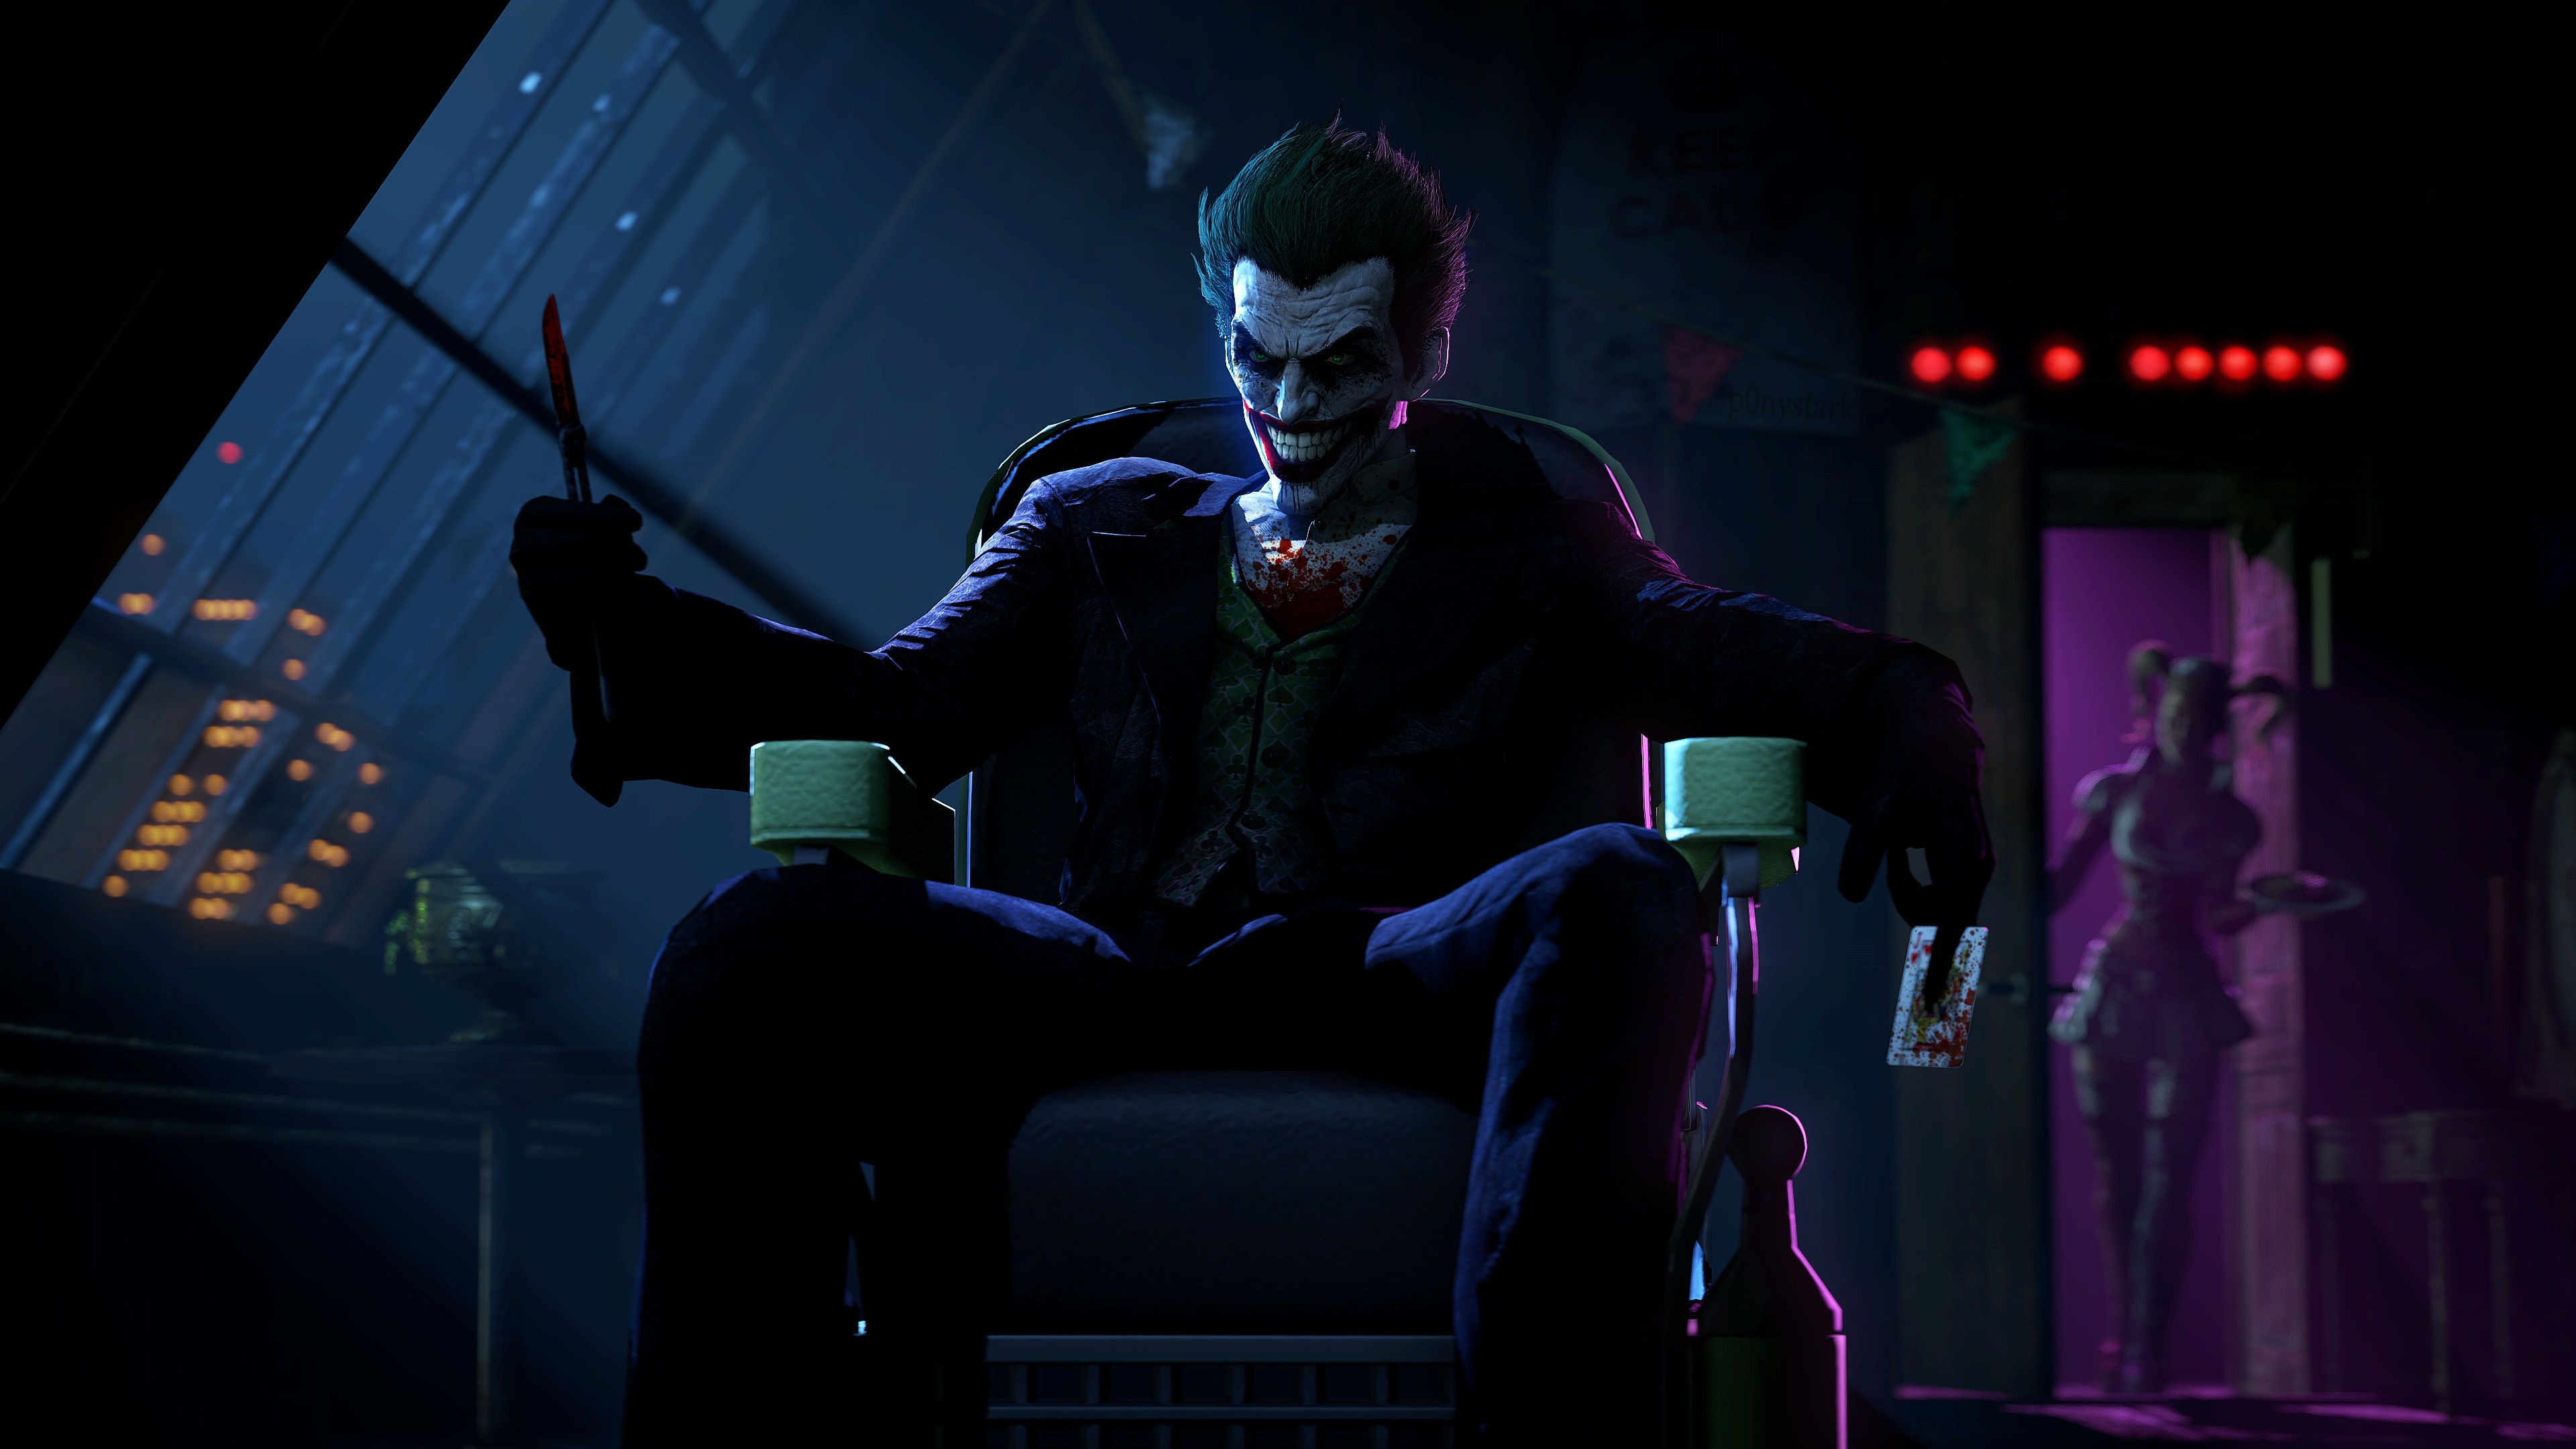 3840x2160 Joker In Batman Arkham Origins